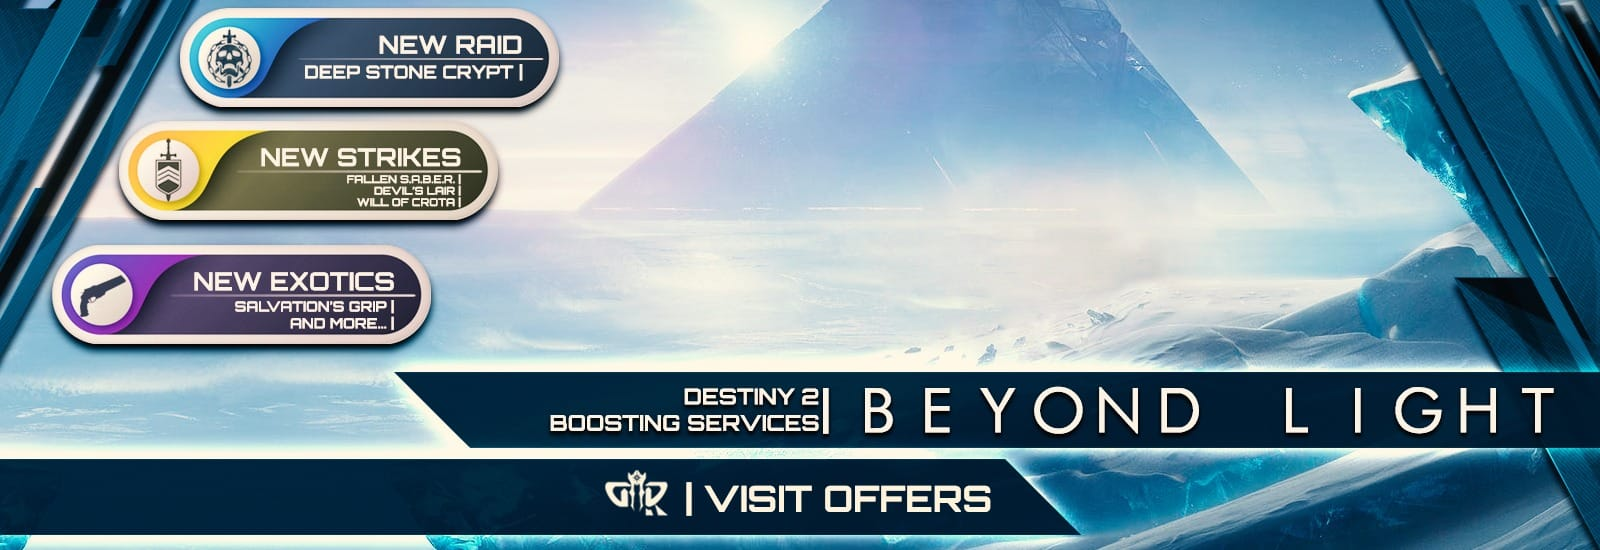 Beyond Light new destiny 2 boosting services